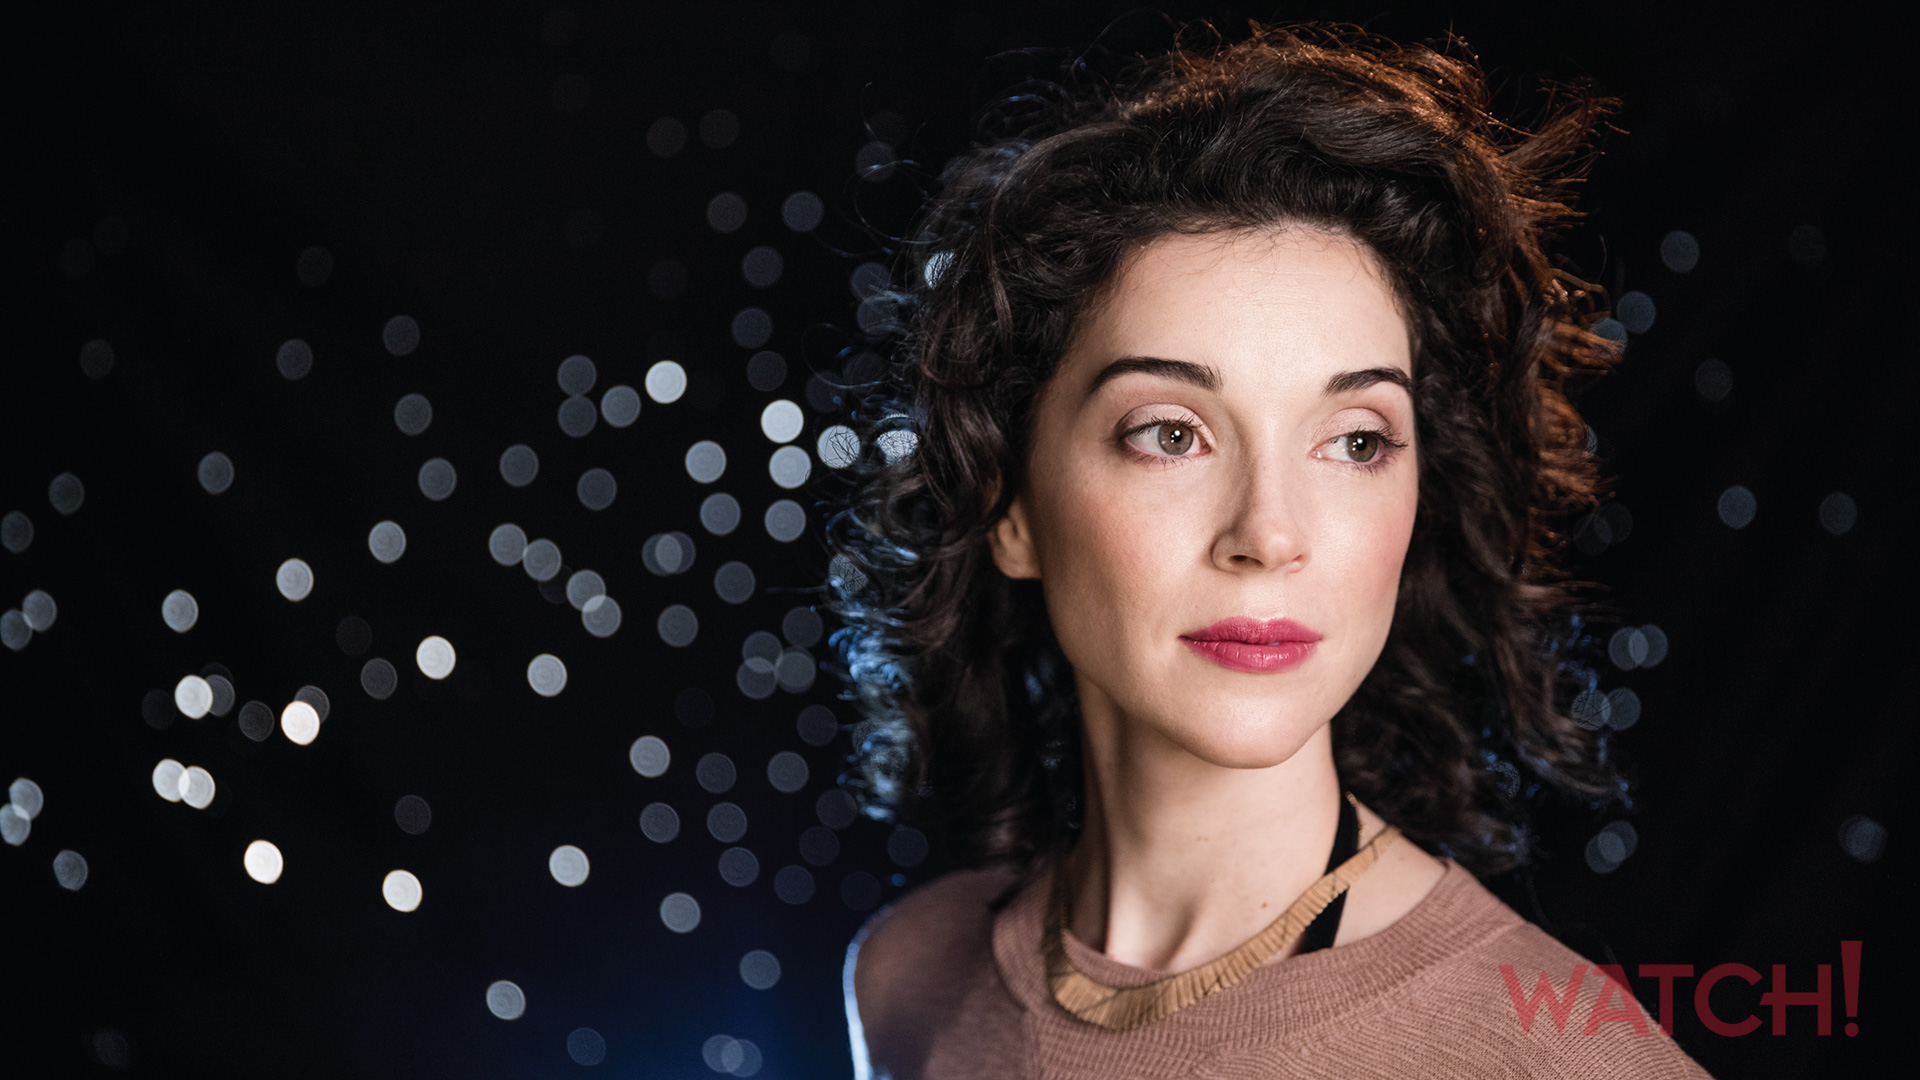 St. Vincent surrounds herself in sparkles